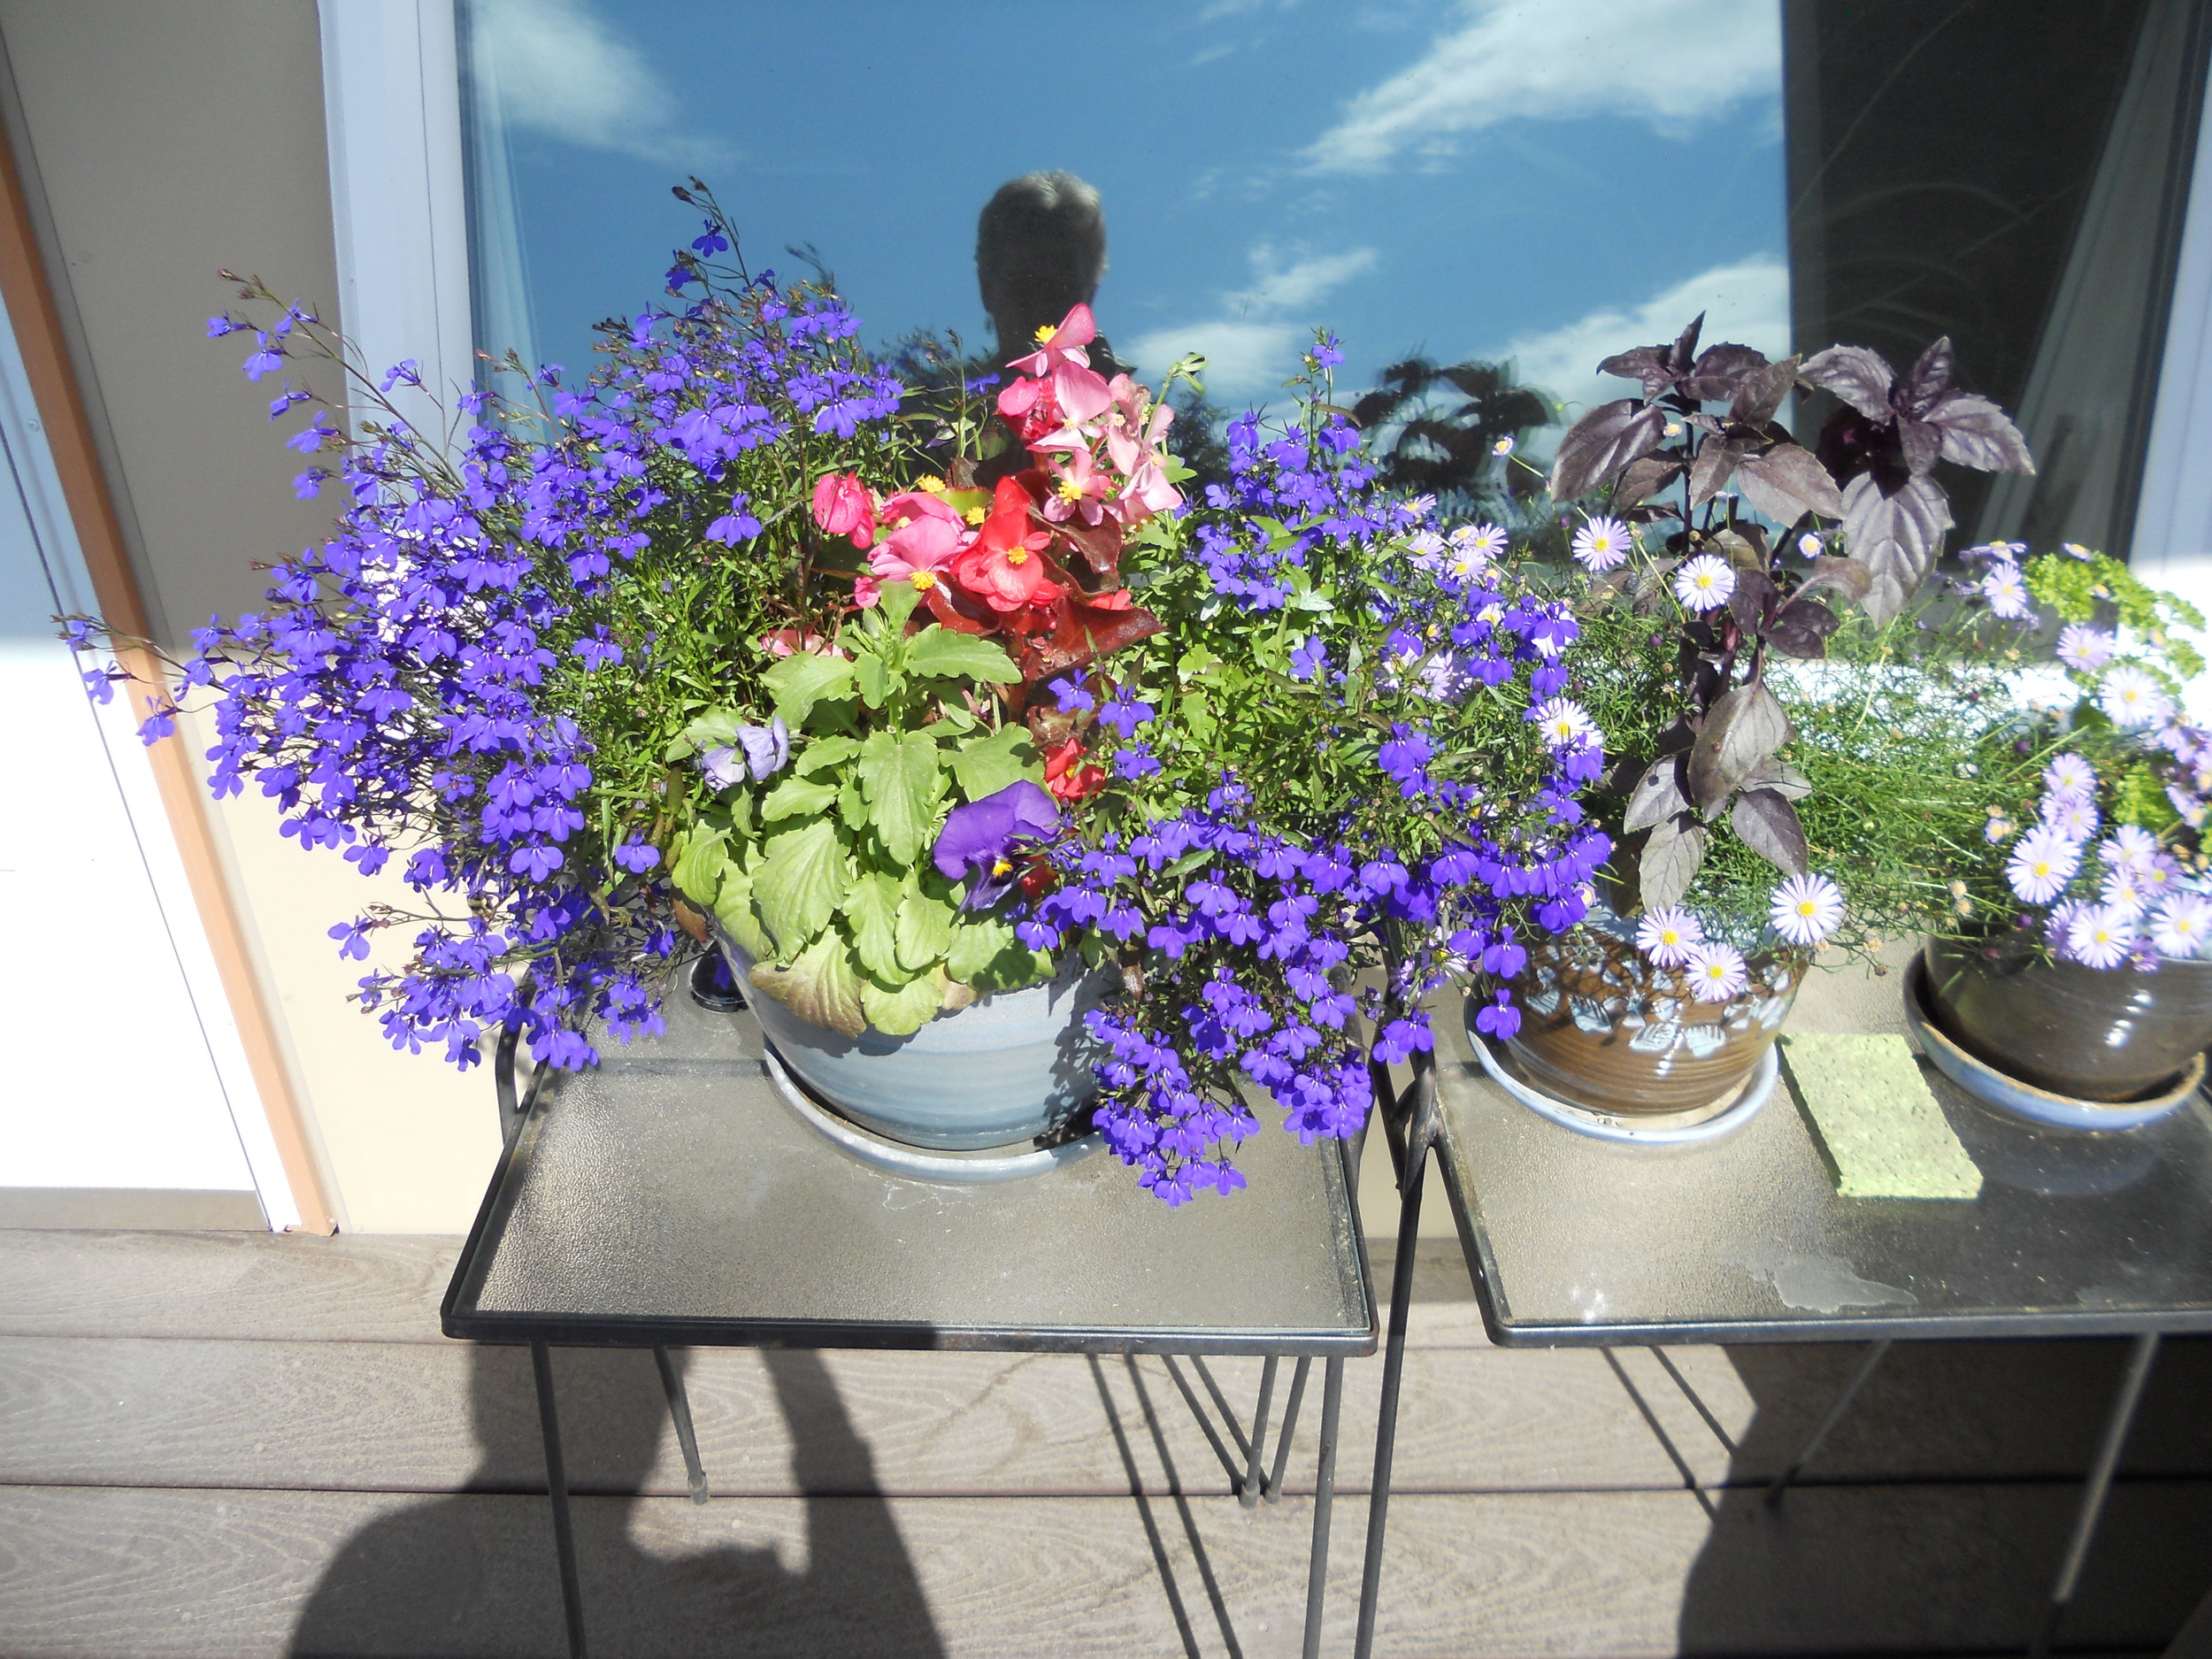 Flowers on balcony.jpg